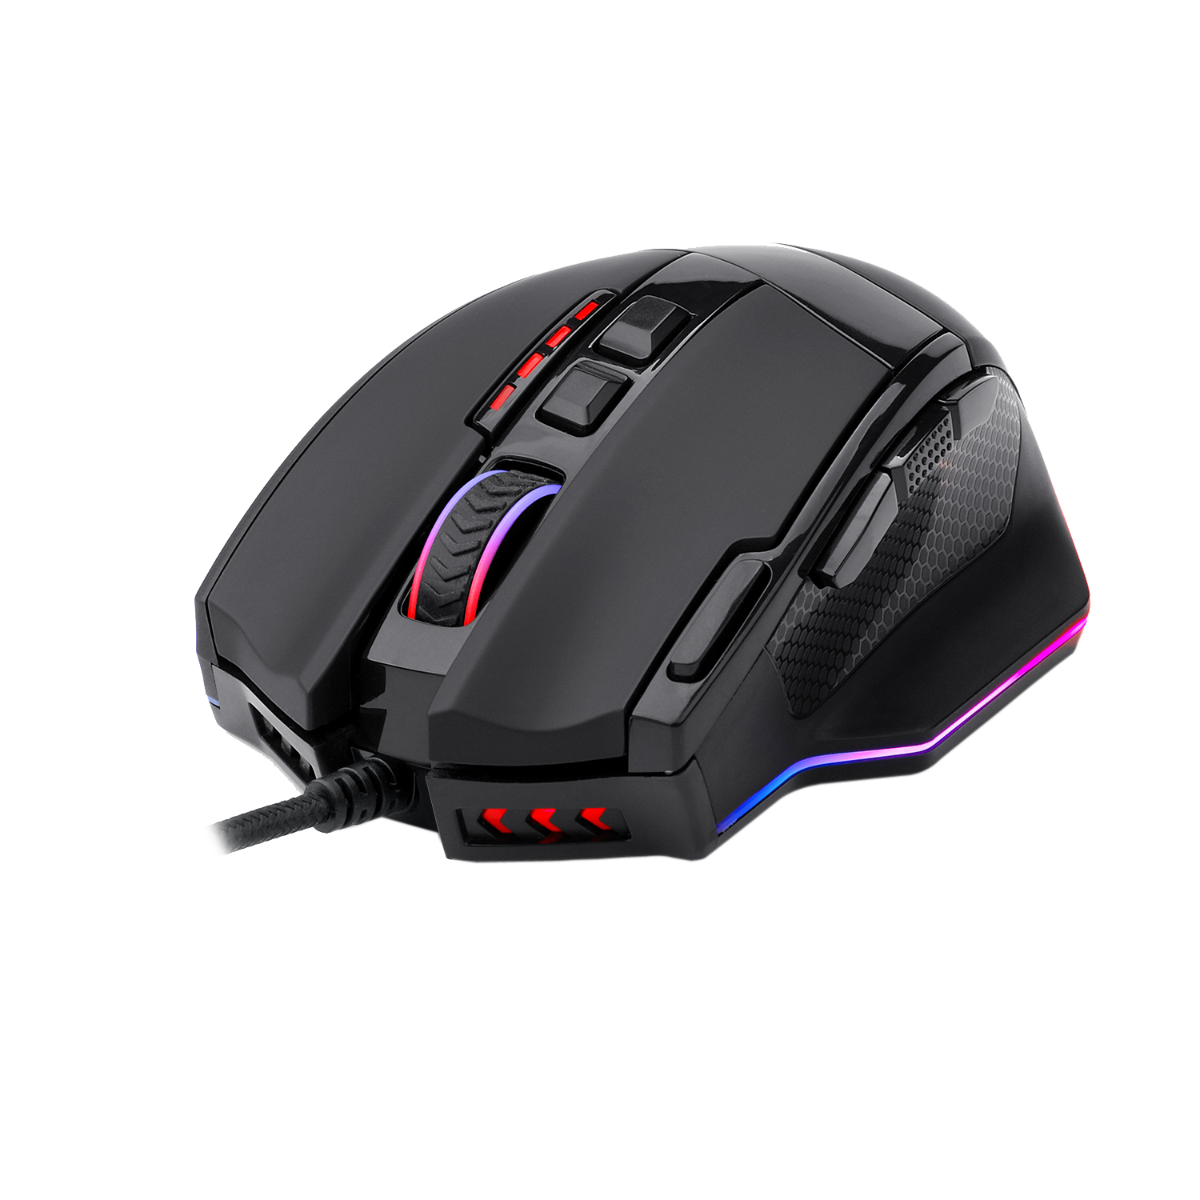 Redragon M801  Gaming Mouse RGB Backlit Ergonomic 9 Button Programmable Mouse Sniper Pro with Macro Recording Rapid-Fire Button 16400 DPI